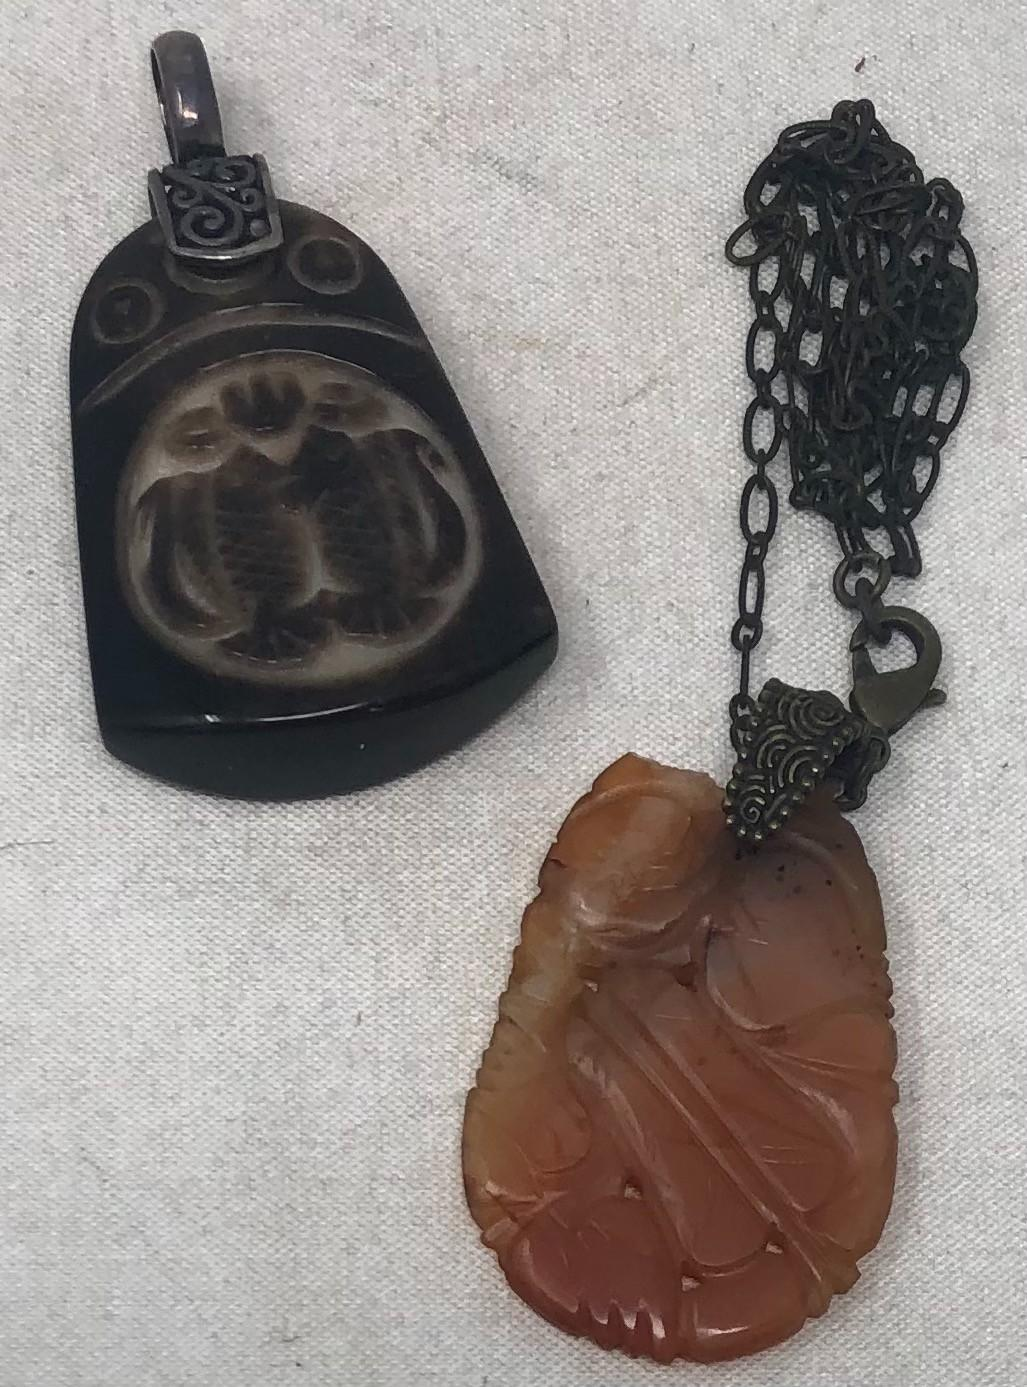 Two large Vintage Carved Pendants; carved orange brown Jadeite pendant, 2 x 1 1/4 inches (chipped at top) on chain; other carved heavy dark brown glass with Asian design carving, 2 x 1 1/2 inches.